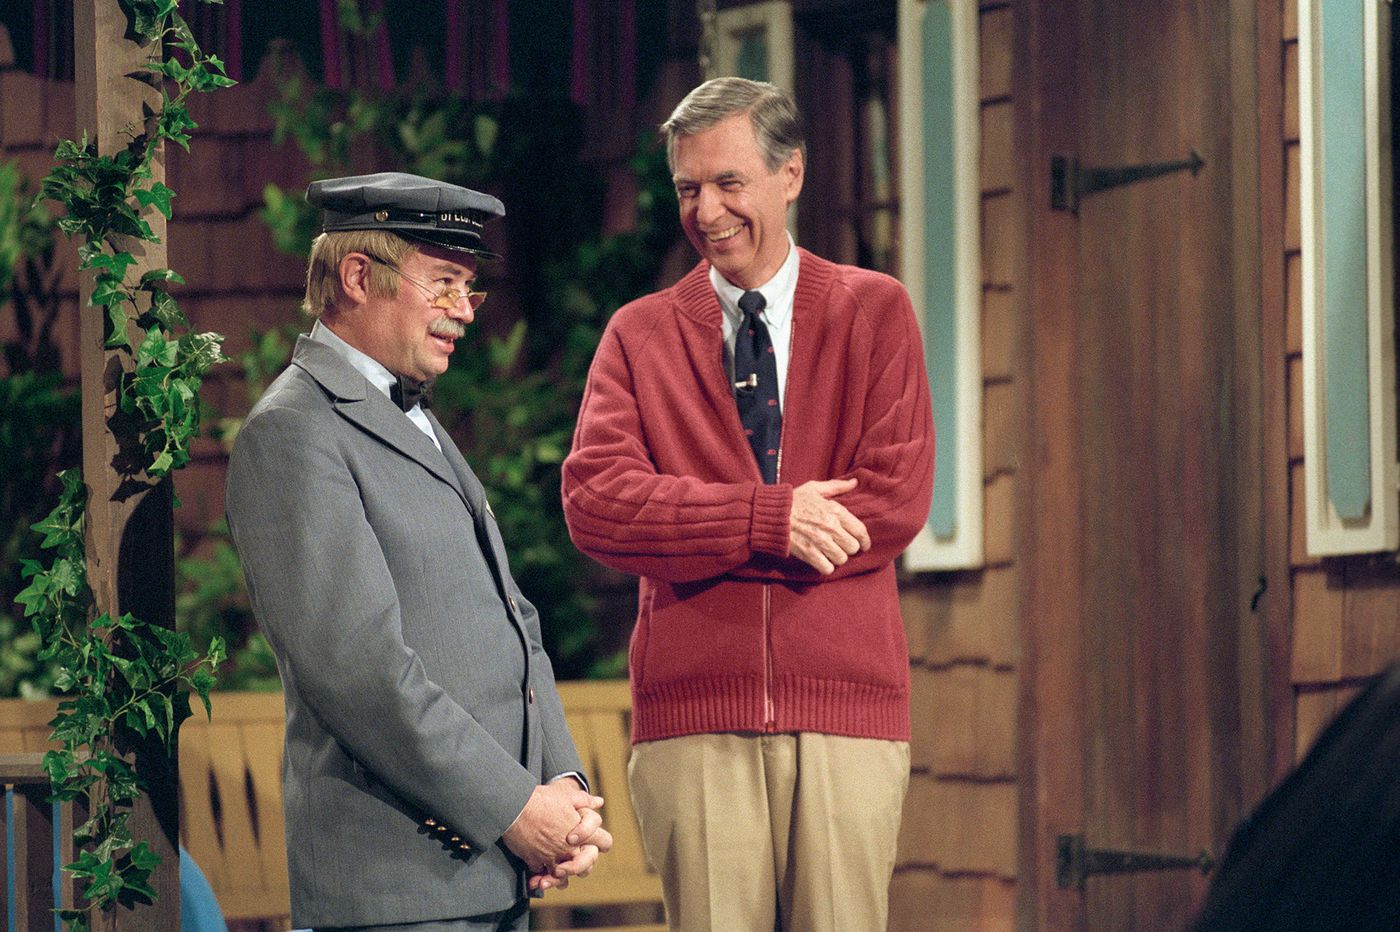 In Pennsylvania, May 23 will be '143 Day' in tribute to Mr. Rogers ...